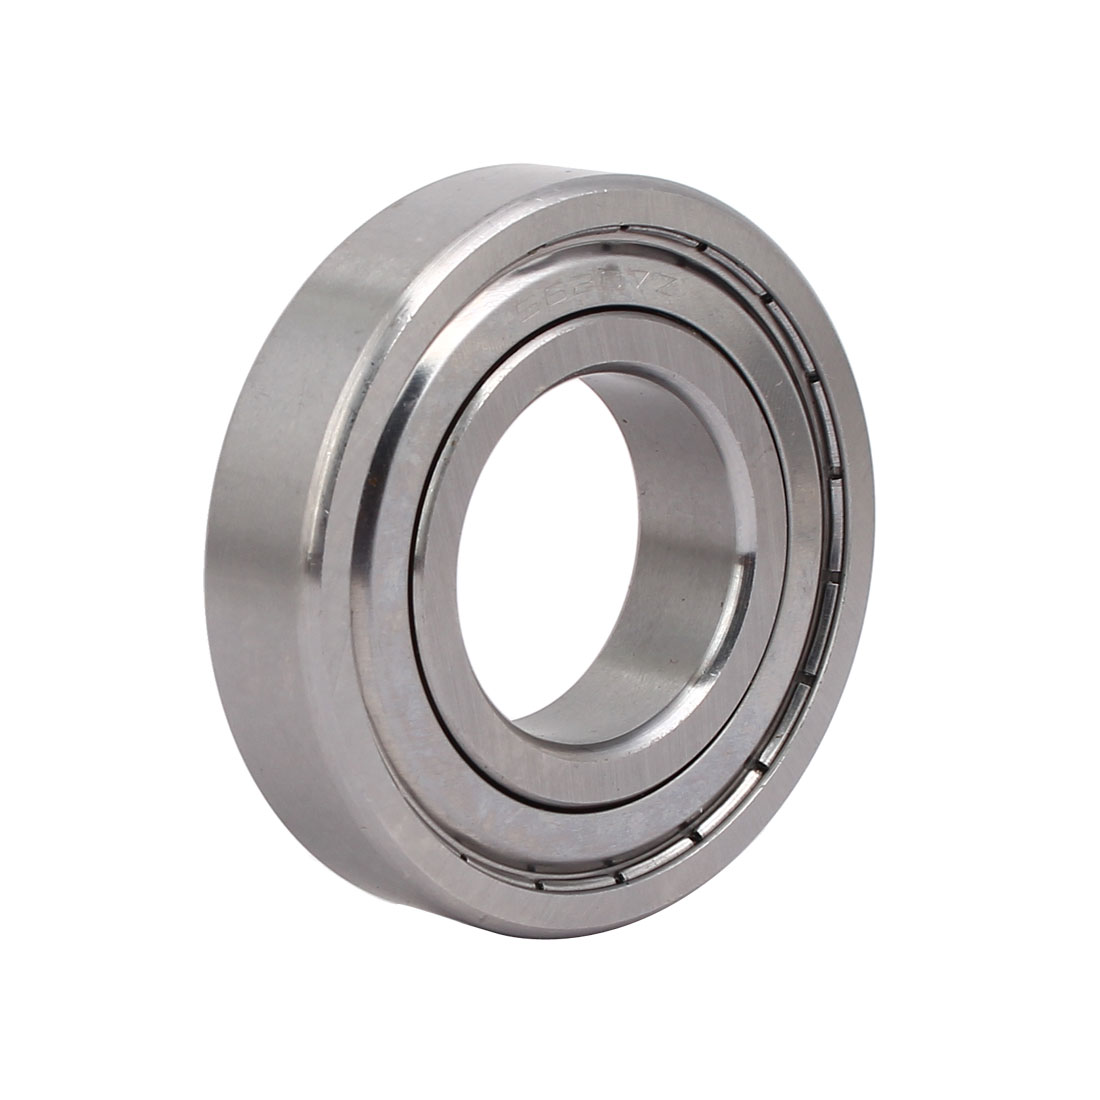 6207 72mmx35mmx17mm Stainless Steel Shielded Deep Groove Radial Ball Bearing